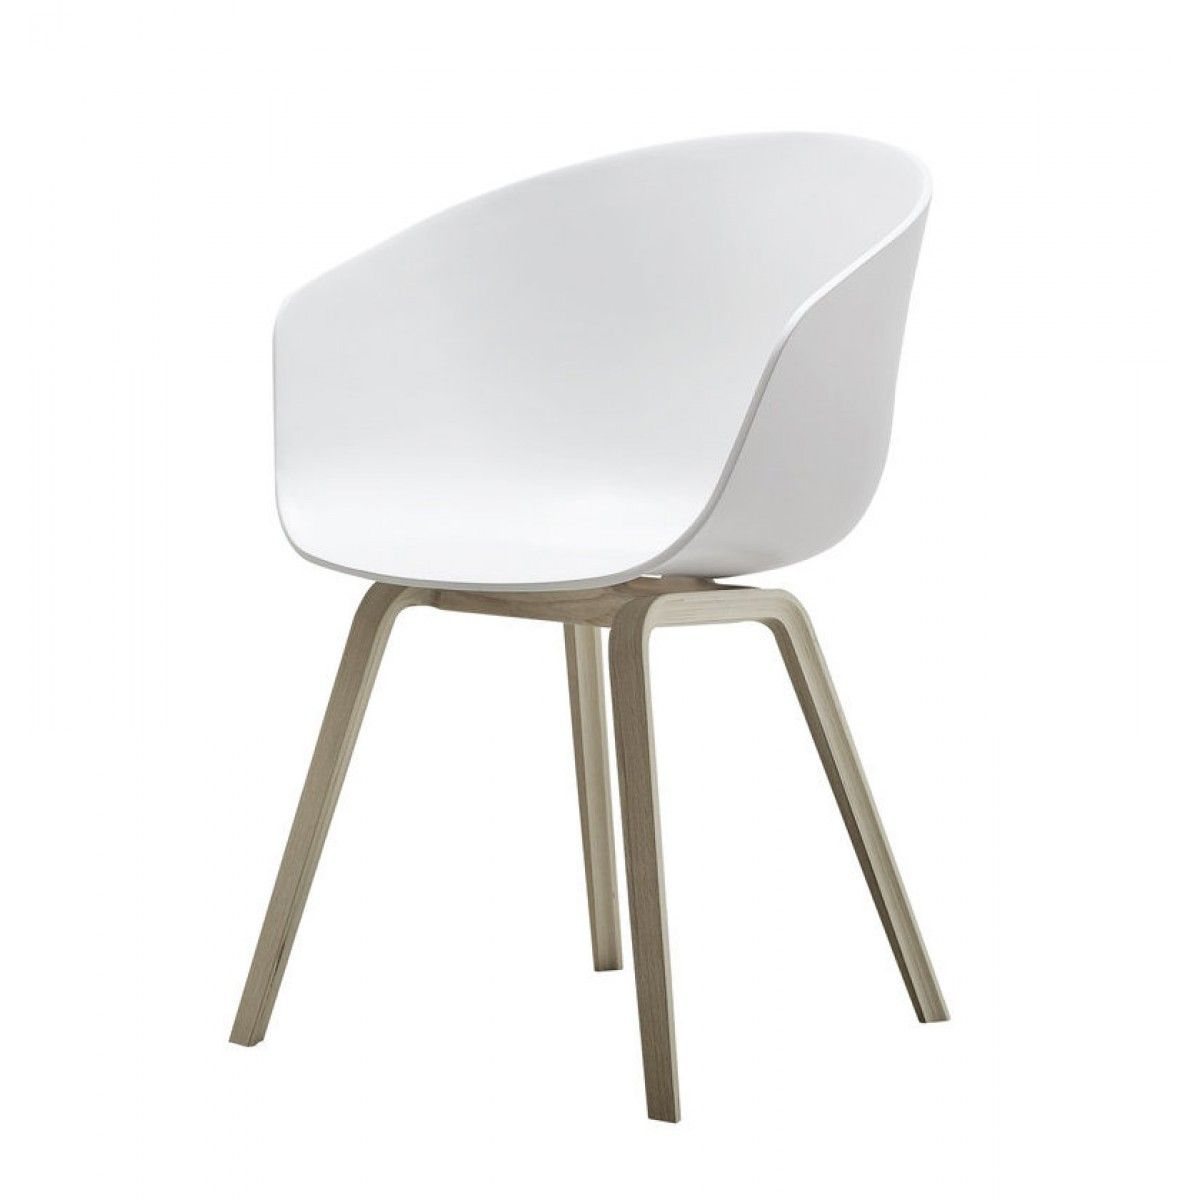 About A Chair Aac22 Aac 22 Stuhl Hay Hay Chair Hay Design White Chair